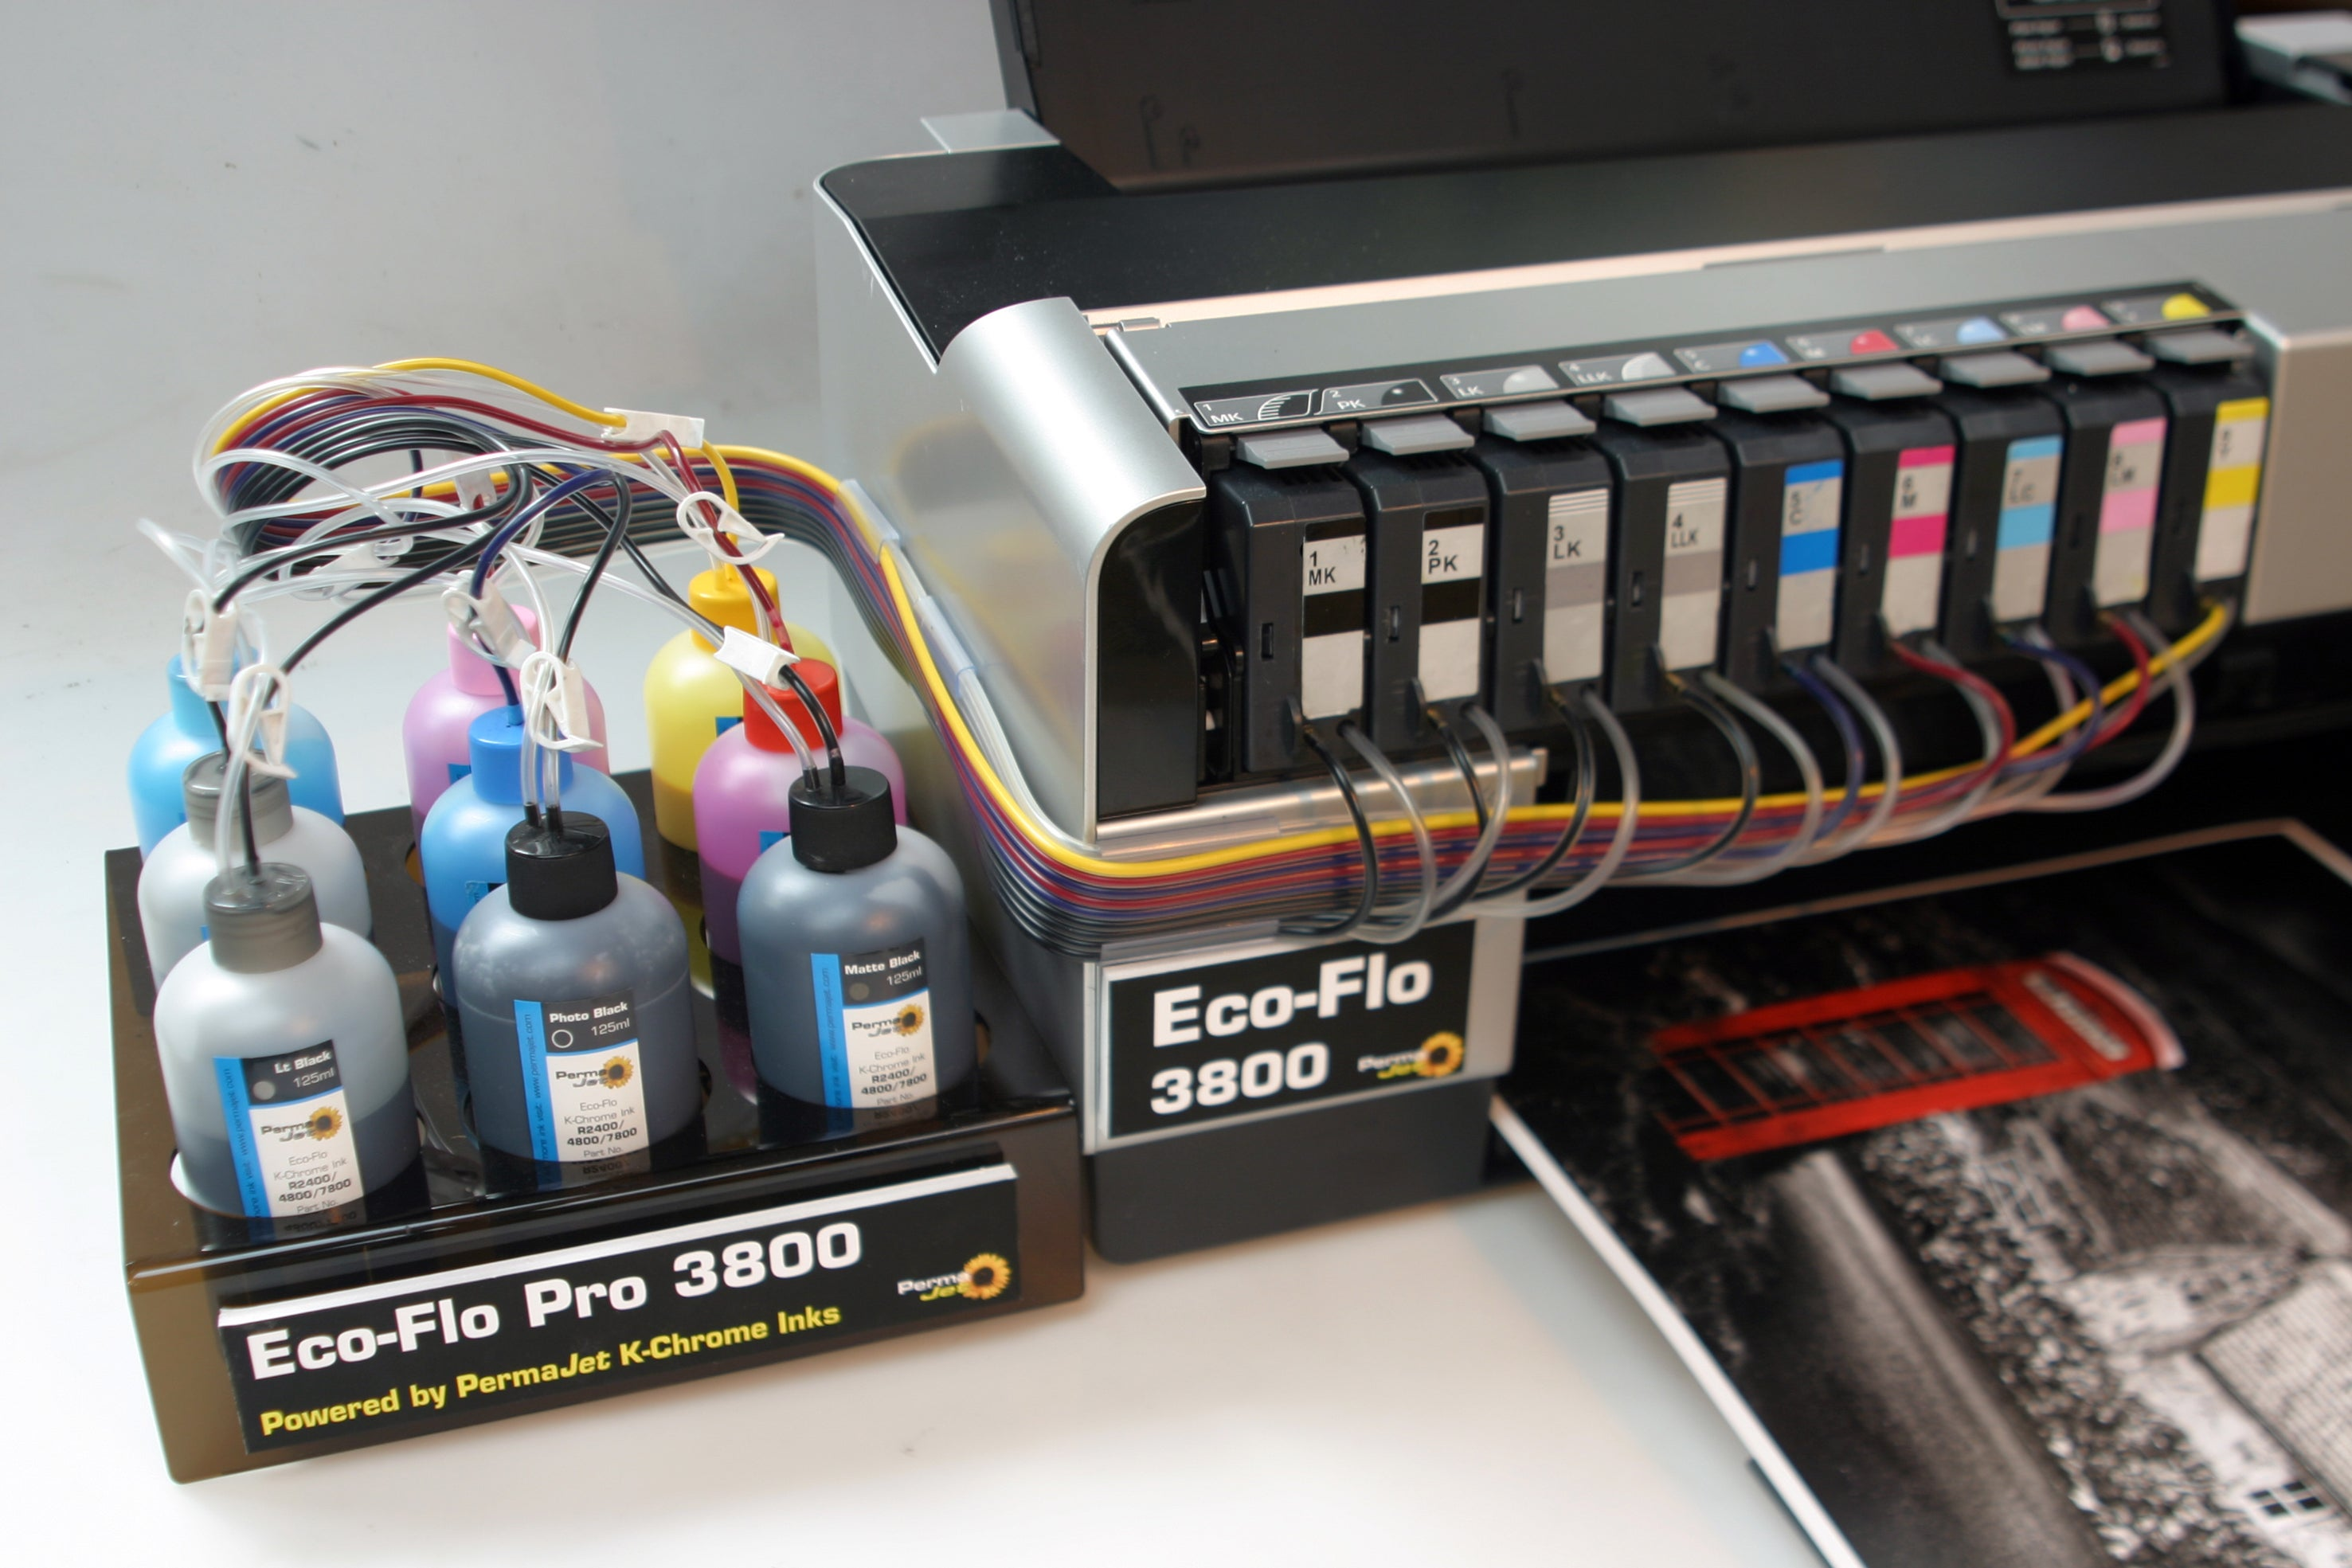 New Permajet Eco Flo Continuous Ink System For The Epson